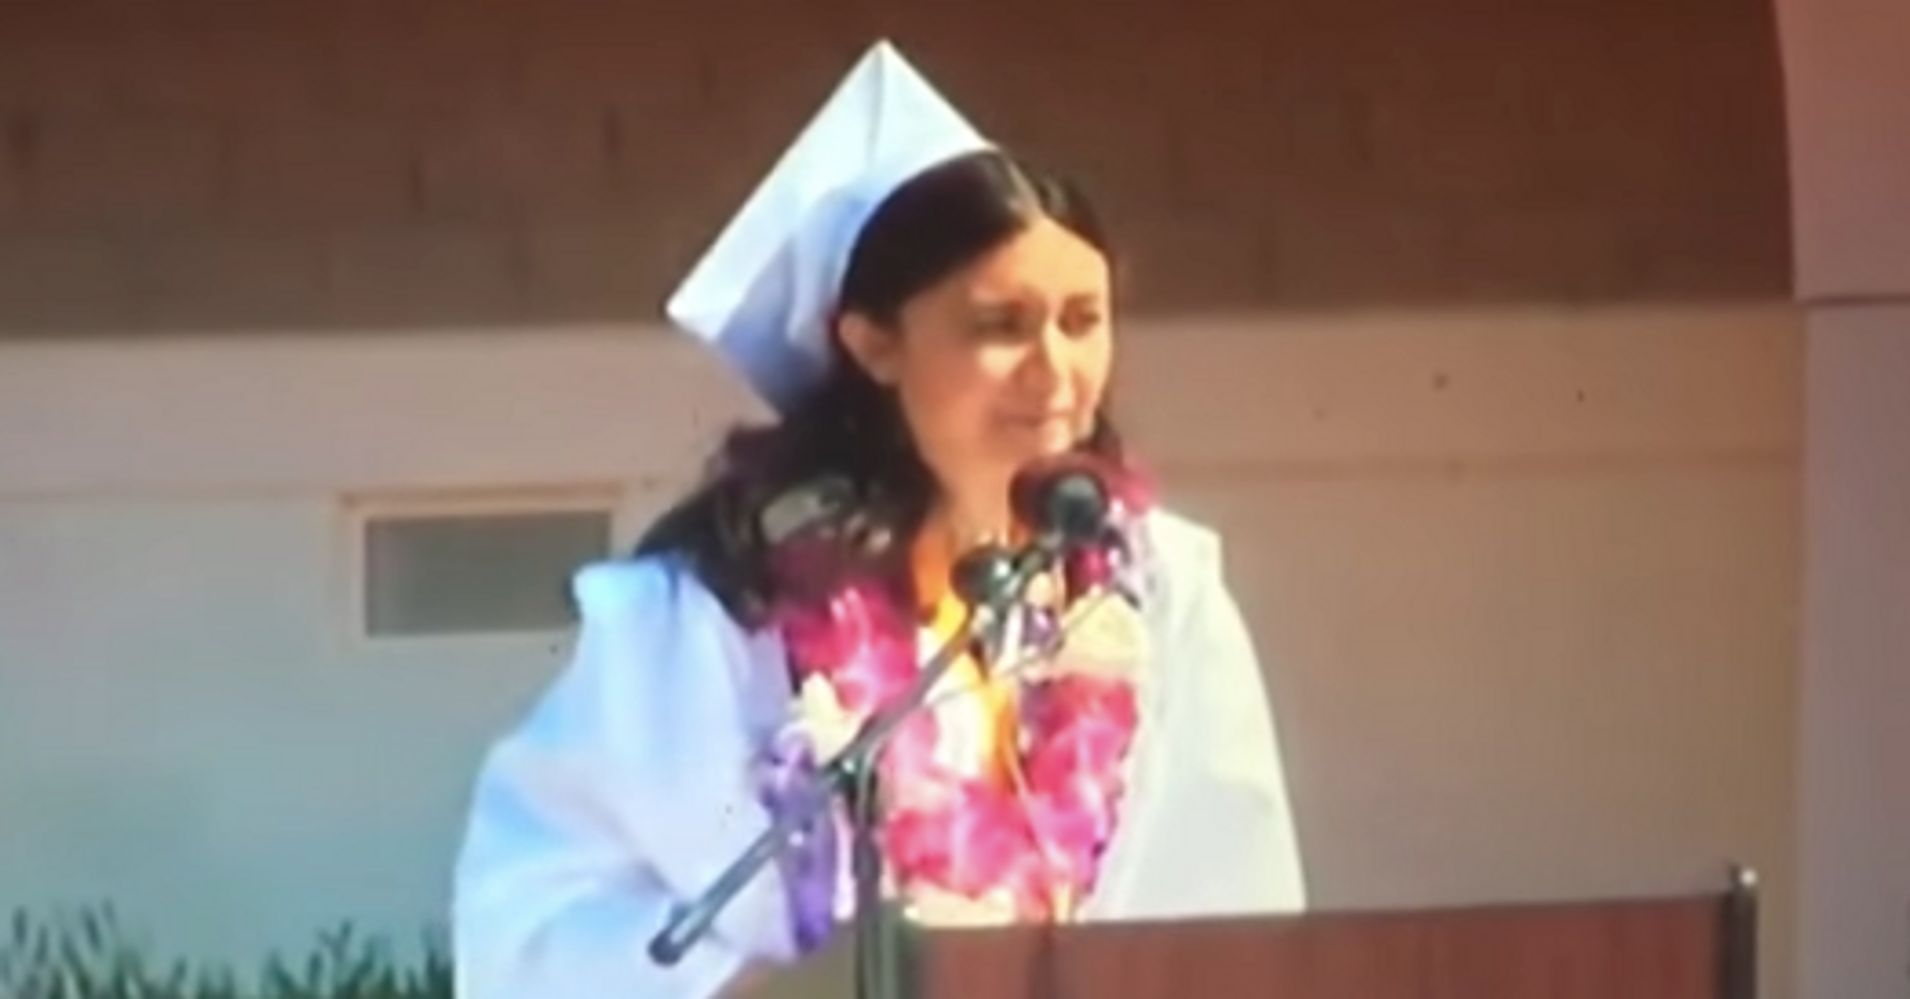 School Cuts Off Valedictorian's Speech After She Tries To Discuss Her Sexual Assault